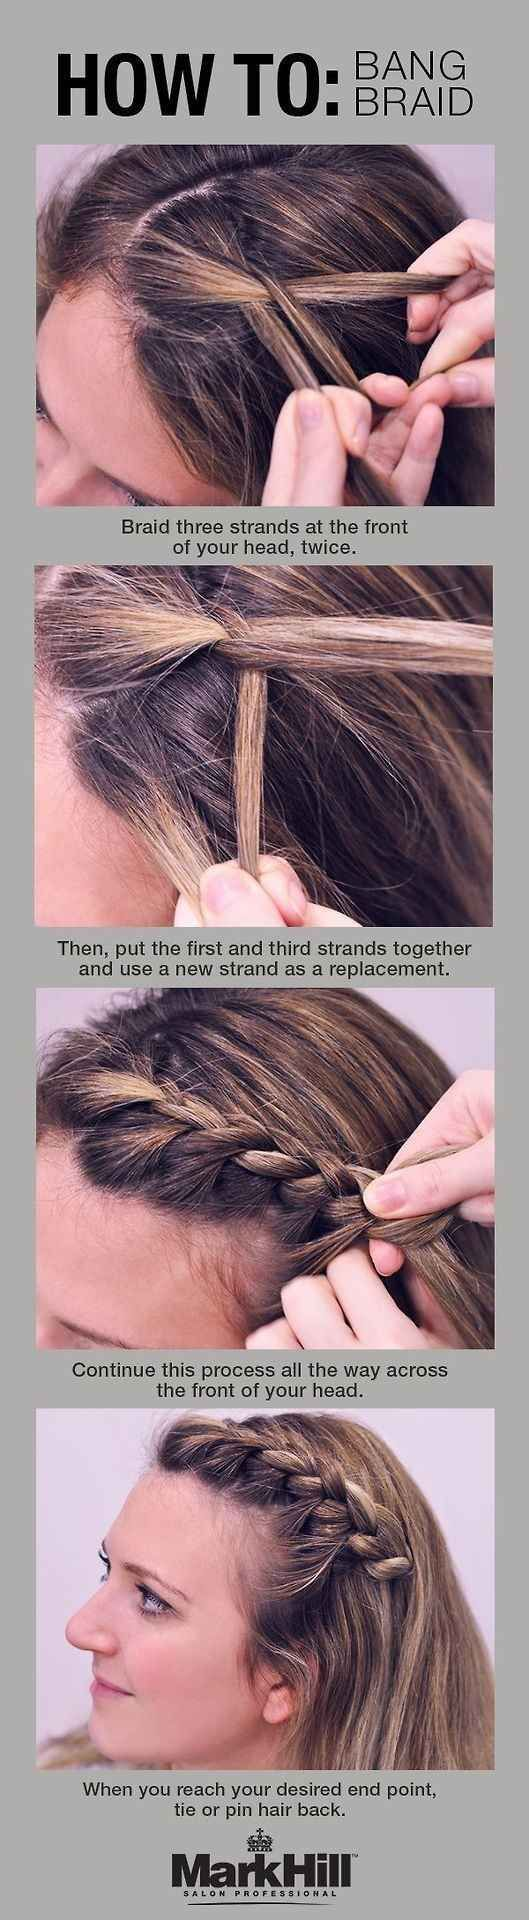 The bang braid is your solution to keeping annoying mid-level bangs off your face.